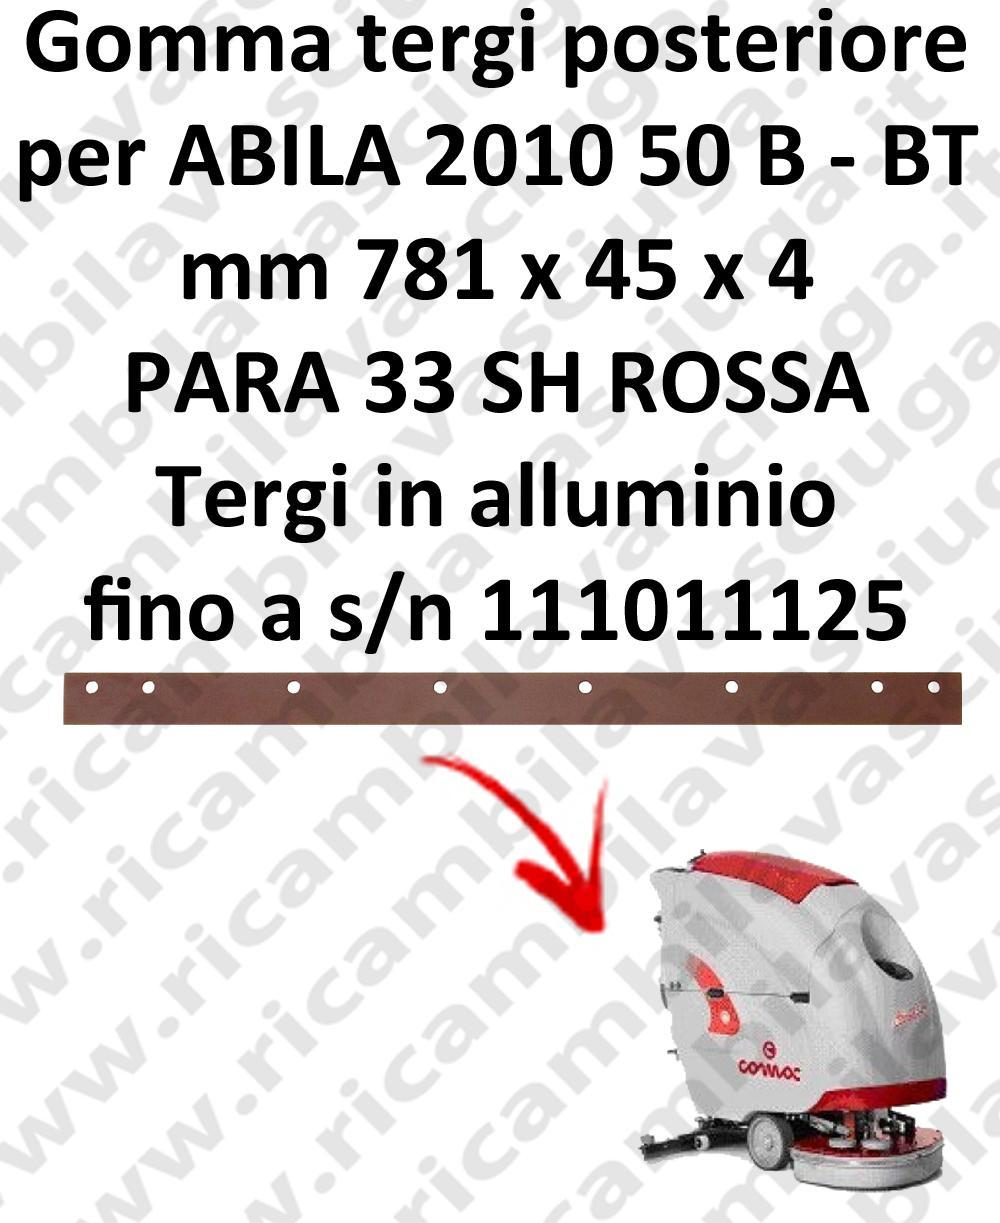 ABILA 2010 50 B - BT till s/n 111011125 Back Squeegee rubber for COMAC accessories, reaplacement, spare parts,o scrubber dryer squeegee